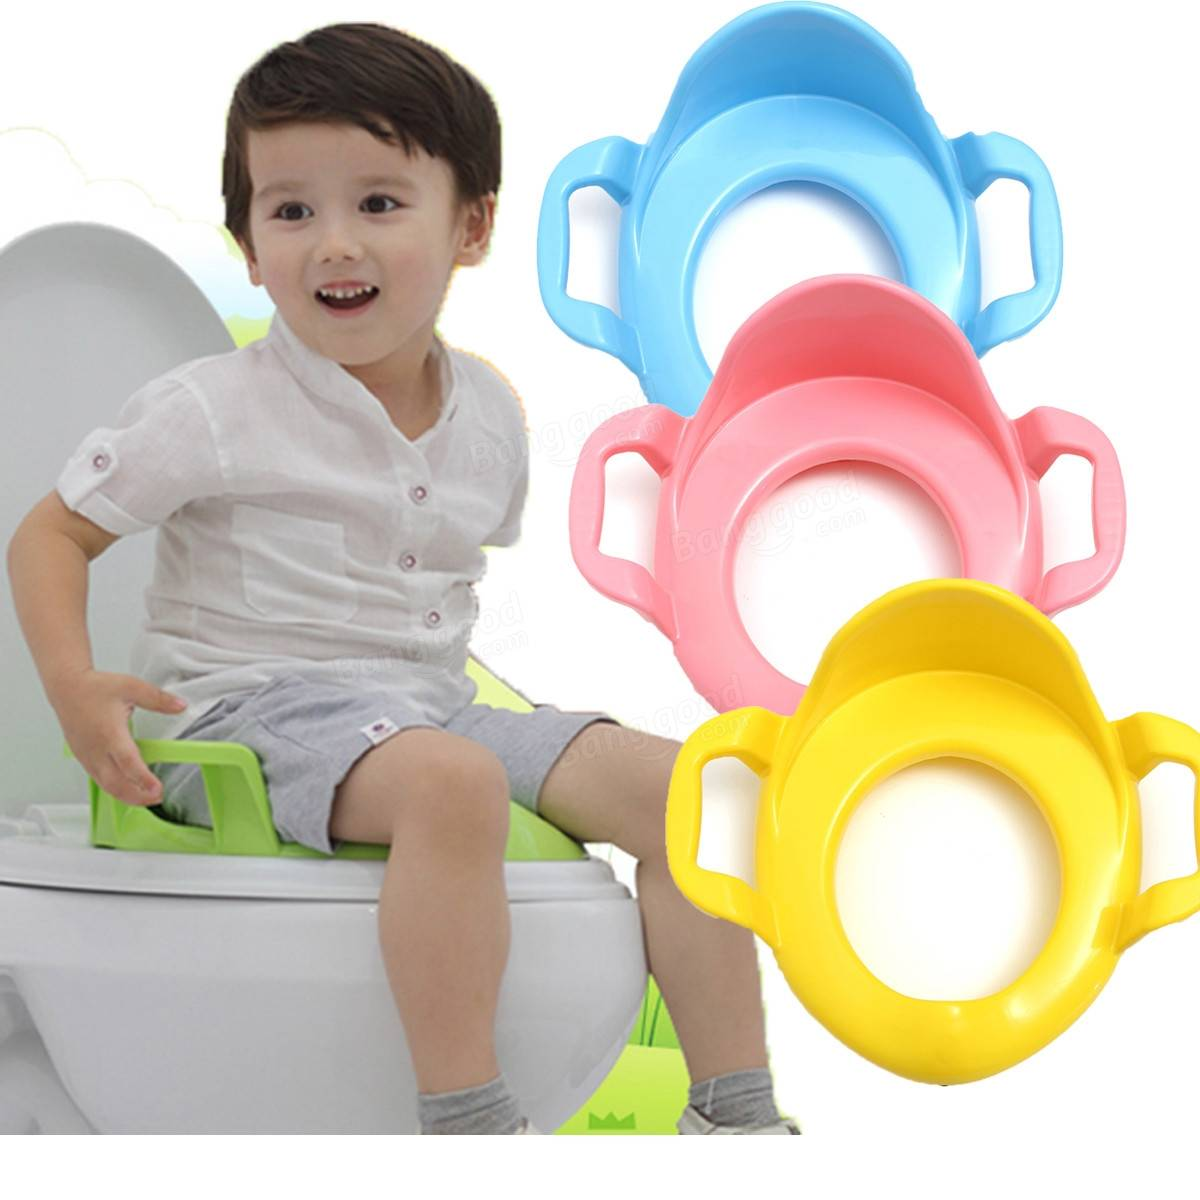 Children Kids Baby Toddler Potty Seat Cushion Toilet Urinal Training Stand Stool With Handle  sc 1 st  Banggood & Children Kids Baby Toddler Potty Seat Cushion Toilet Urinal ... islam-shia.org